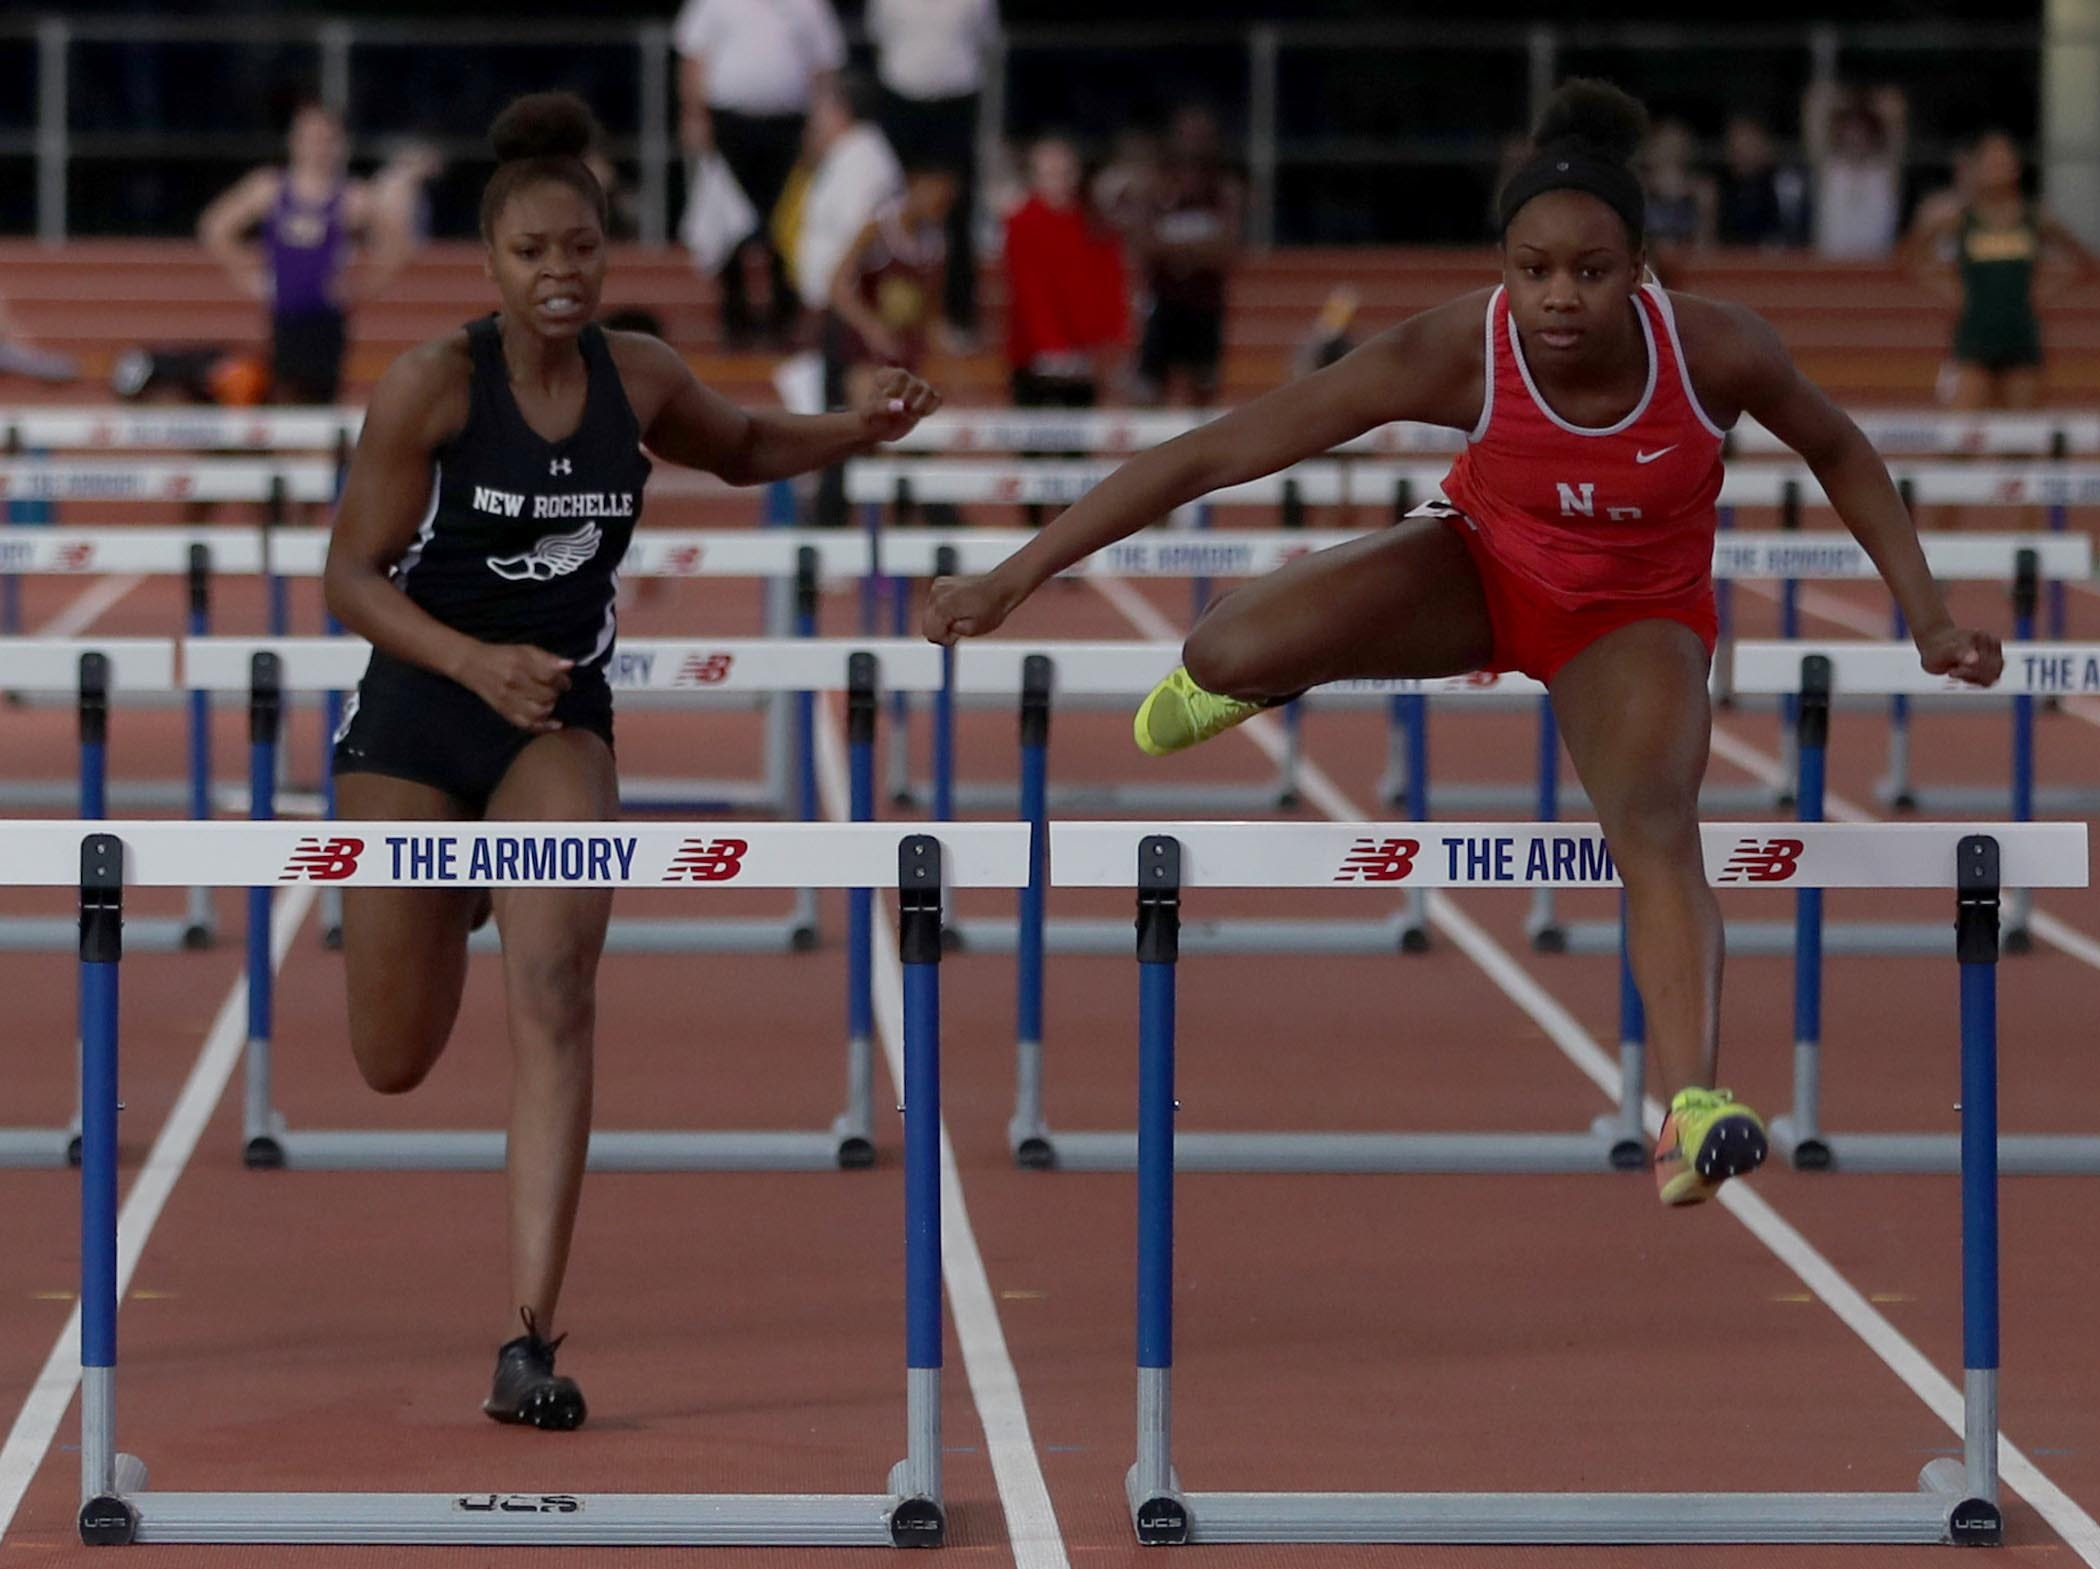 Nadia Saunders, right, of North Rockland won the 55 meter hurdles during the Section 1 New York State Track and Field State Qualifier at the New Balance Armory in Manhattan Feb. 17, 2019. Saunders won with a time of 7:36.